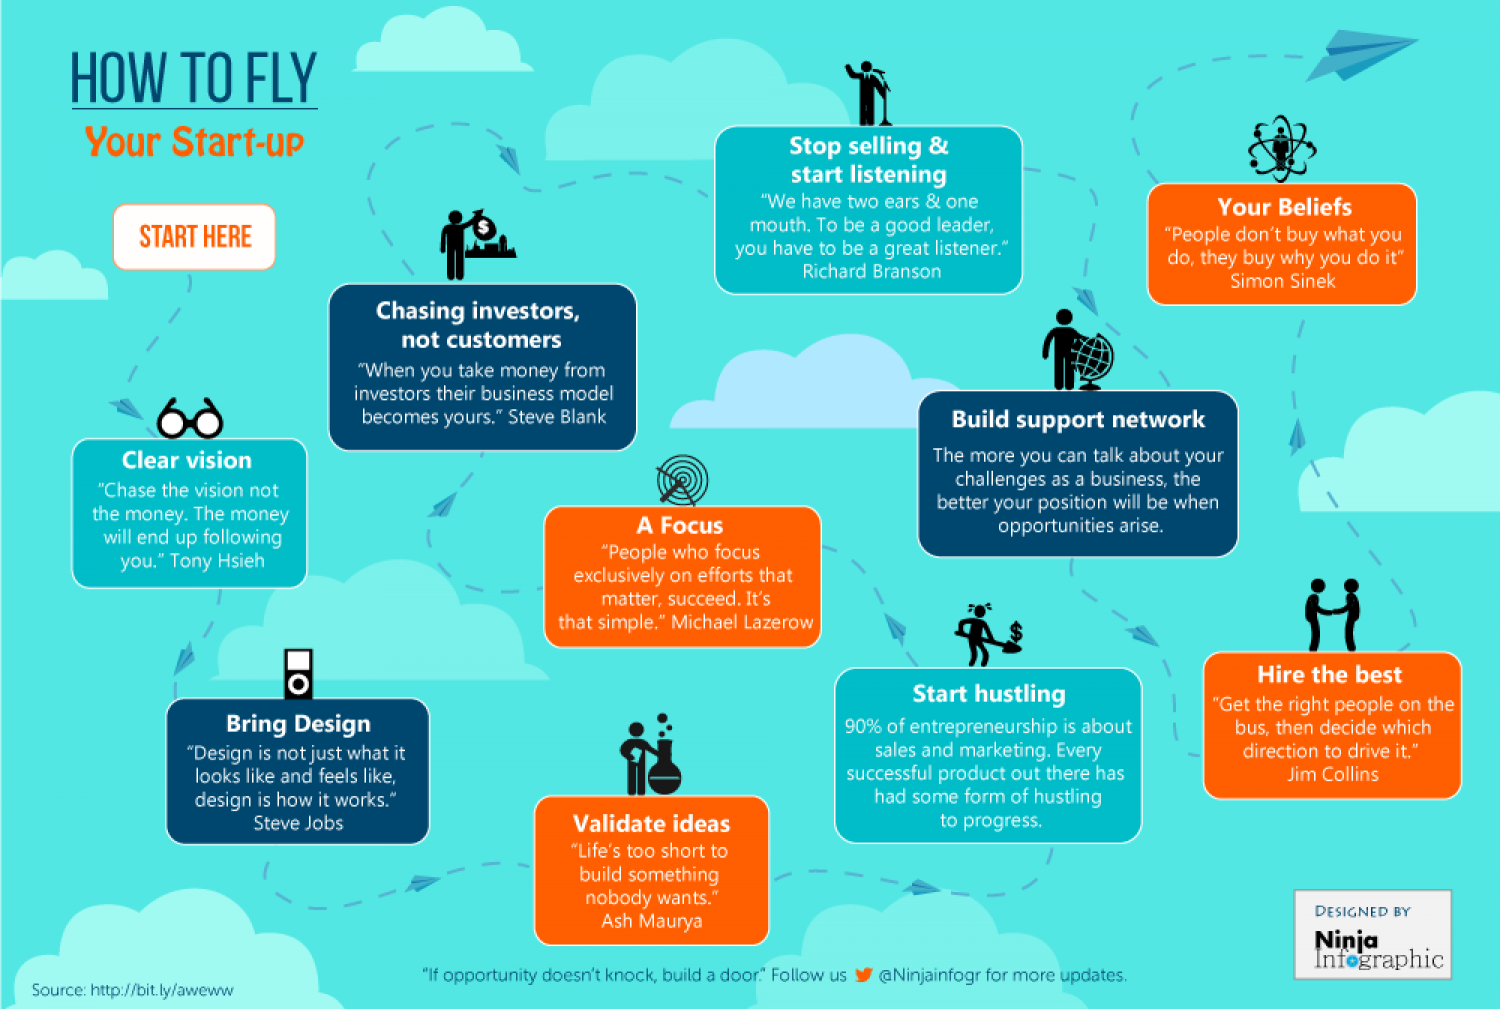 How to Fly Your Start-Up Infographic